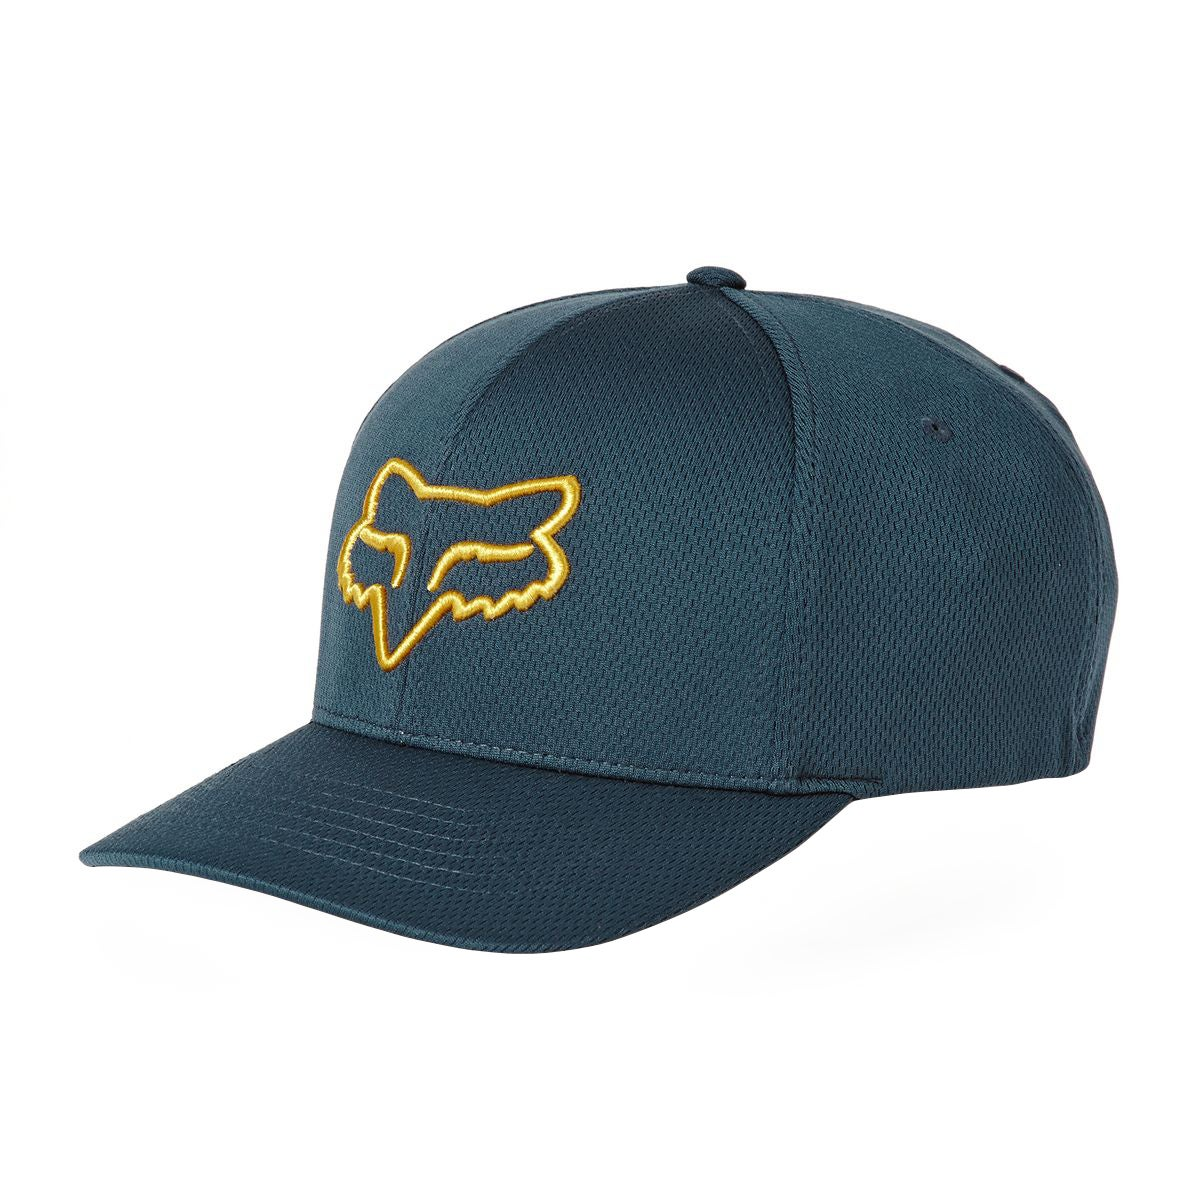 outlet store 6b671 8f7ef ... promo code for fox racing lithotype flexfit hat cap blue 5d112 96c20